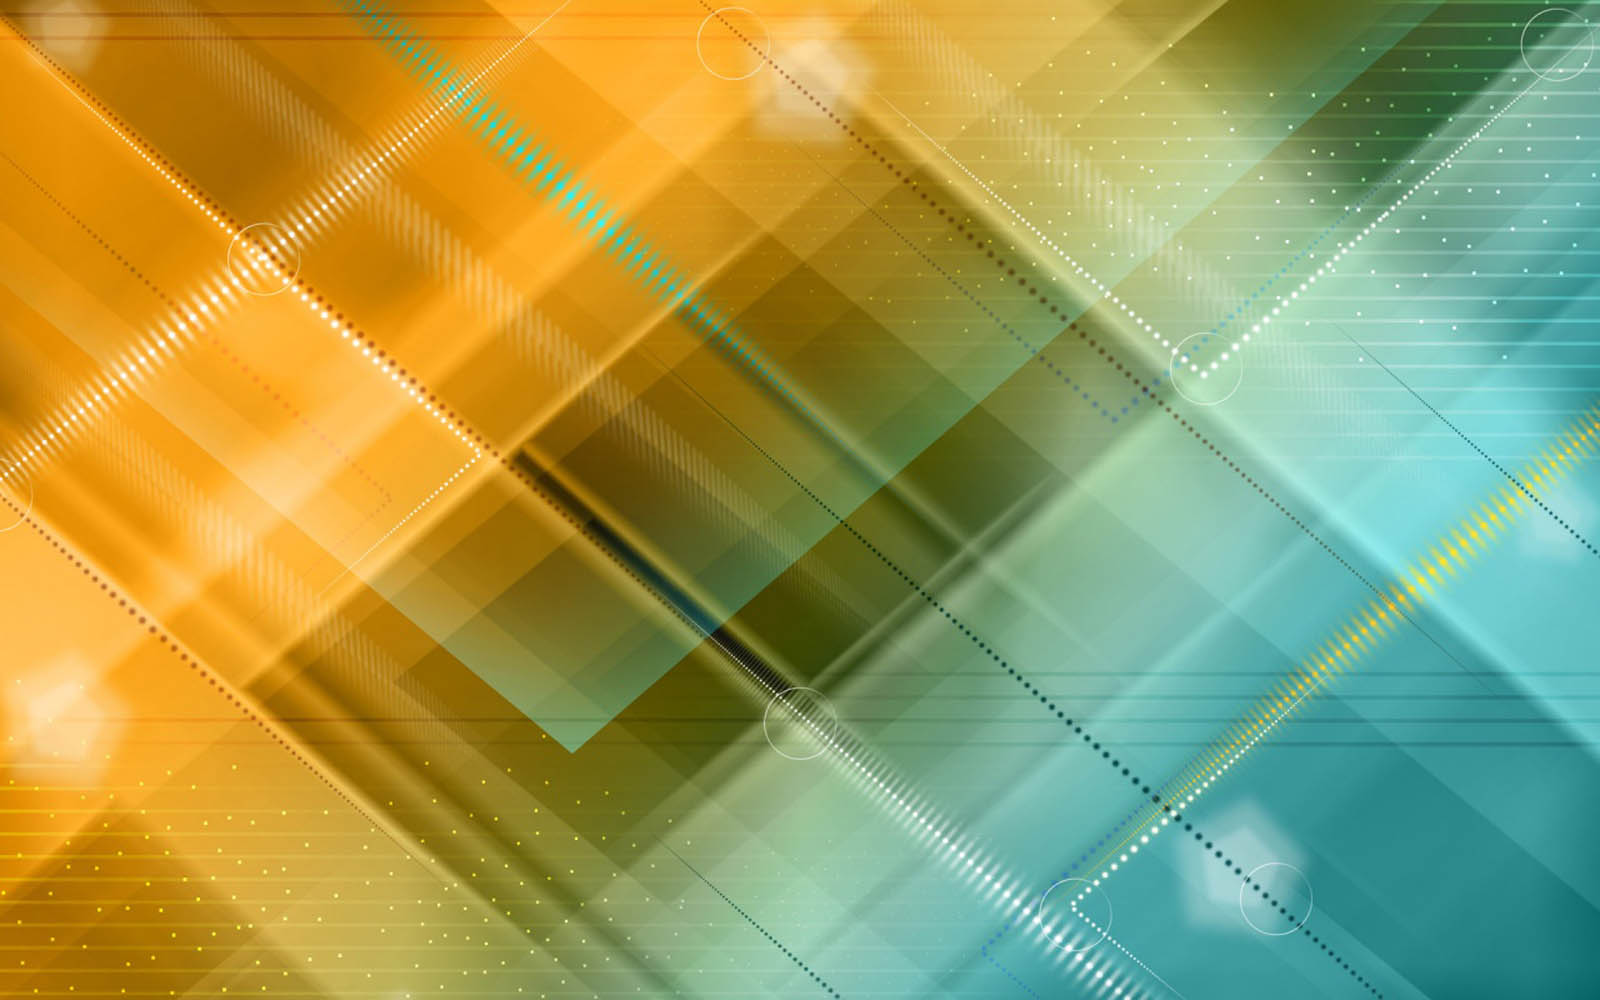 Free Wallpaper Design : Wallpapers abstract design